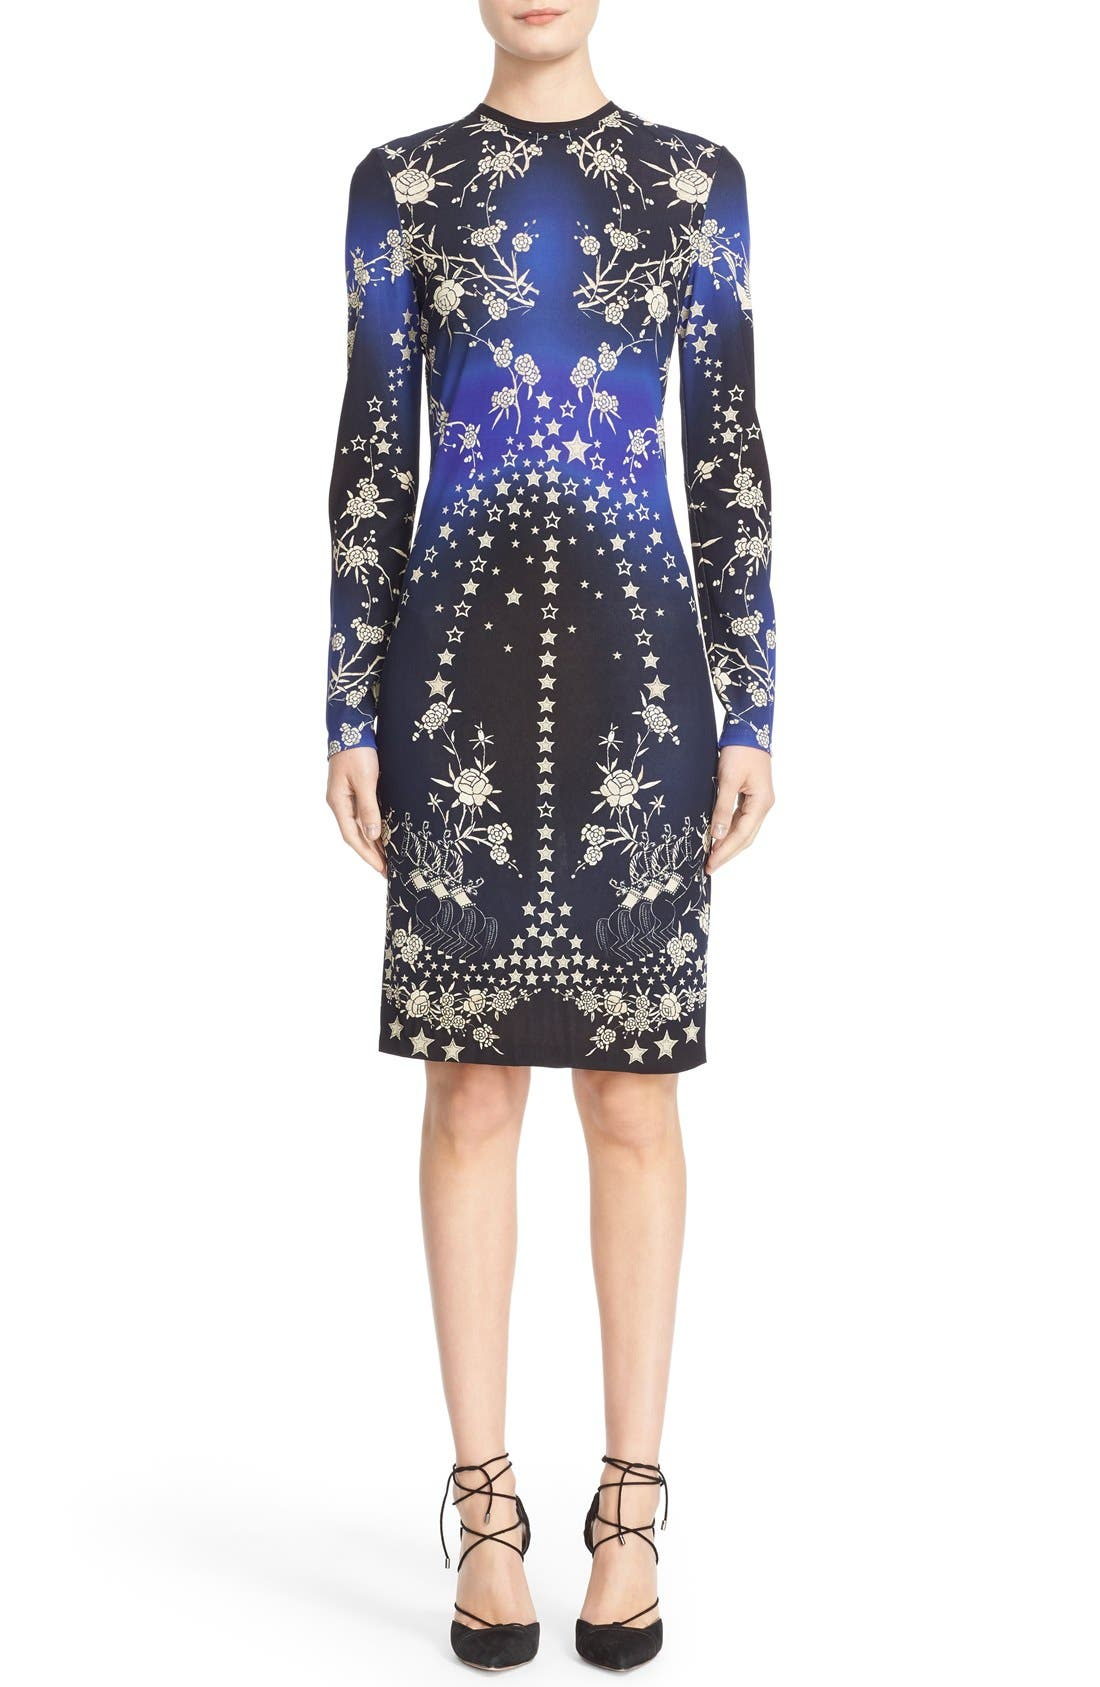 Alternate Image 1 Selected - Roberto Cavalli 'Pretty Thing' Print Jersey Dress